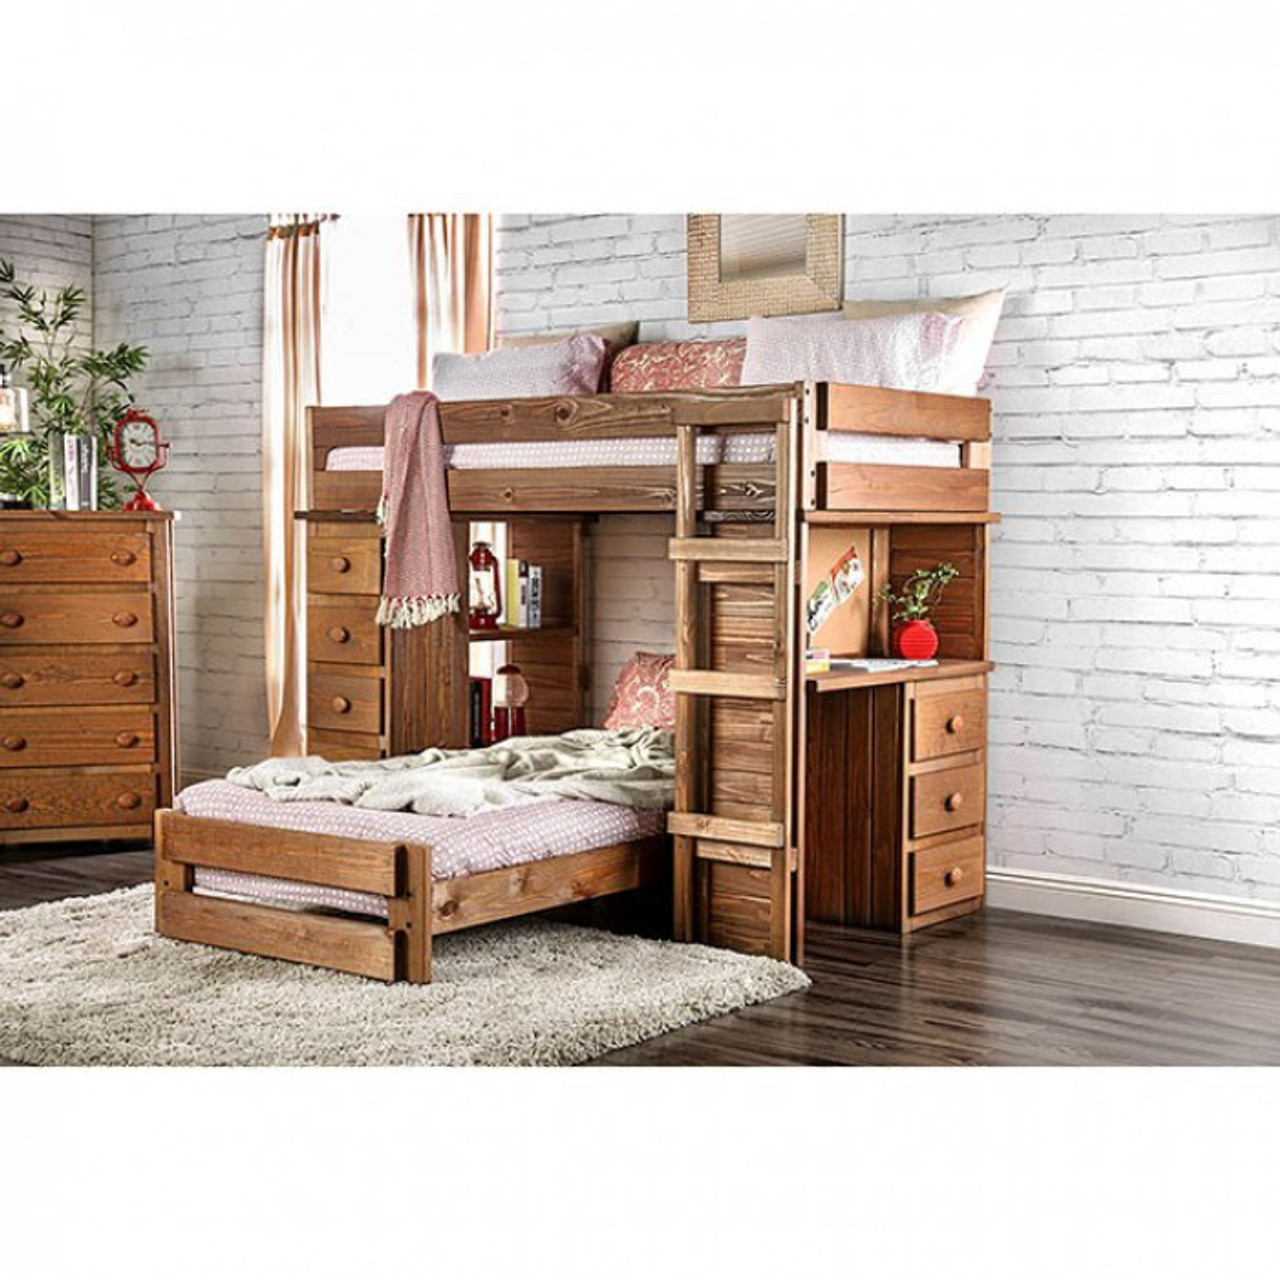 beckford twin loft bed with desk and chest